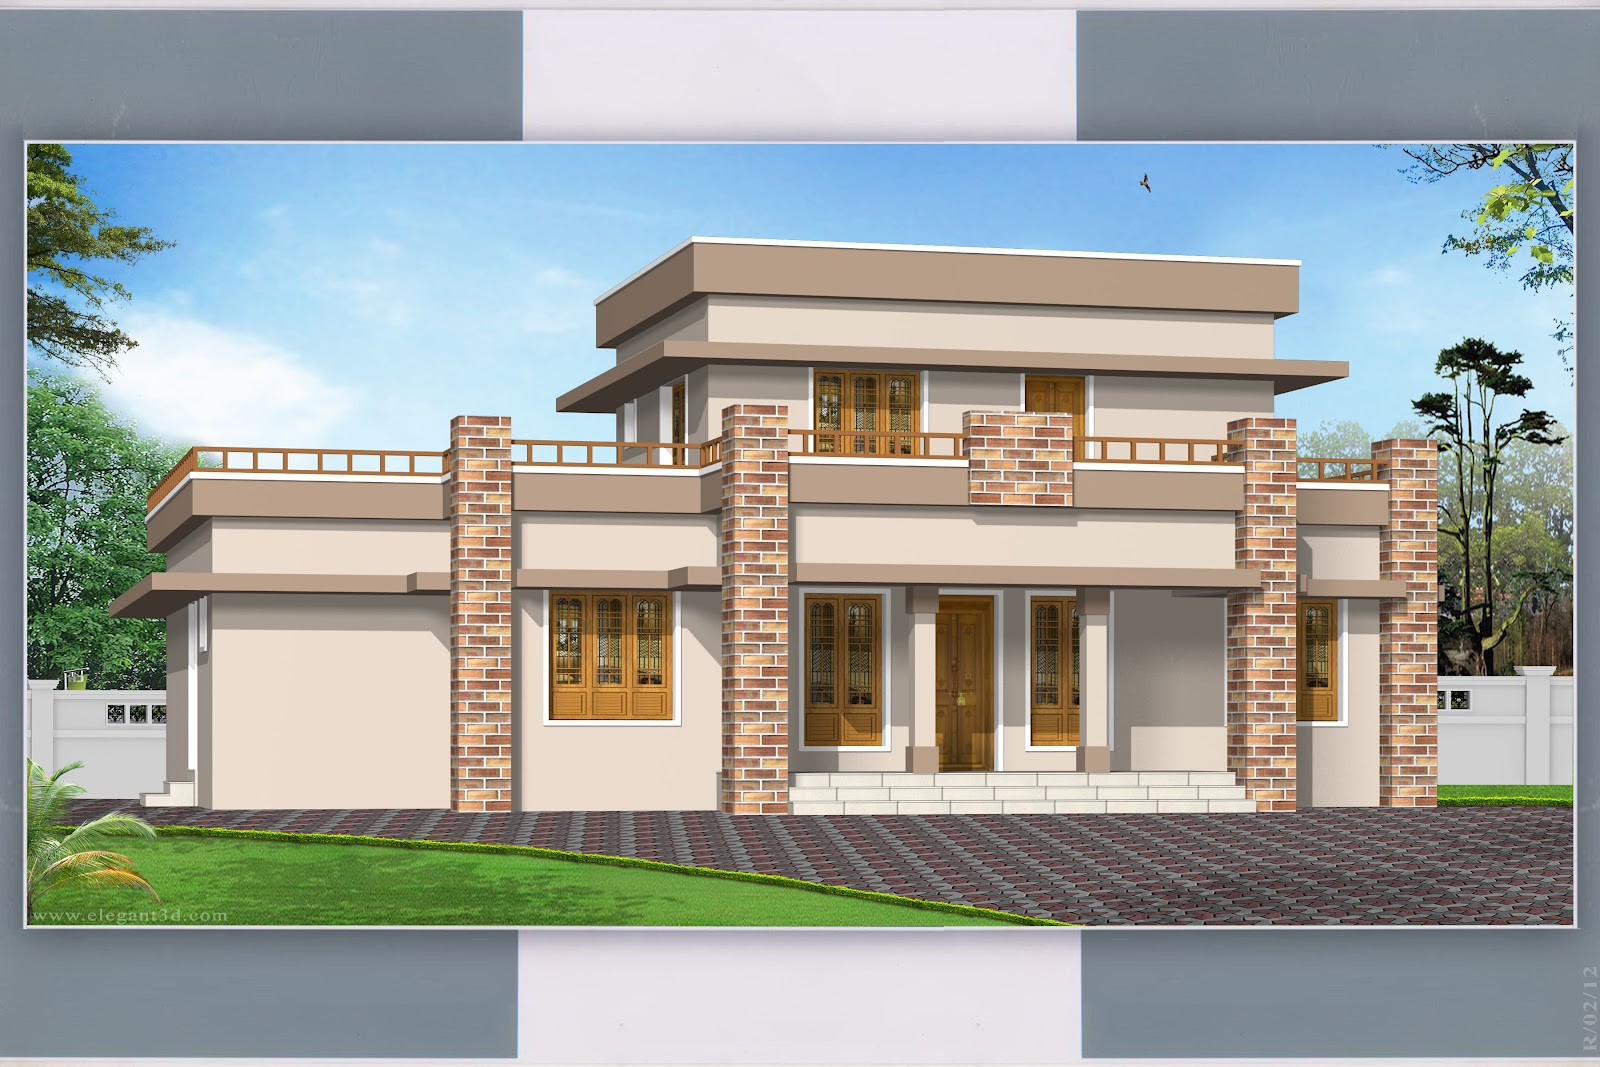 Pillar beuatie 1630 sqft engineering dairy for Home design images